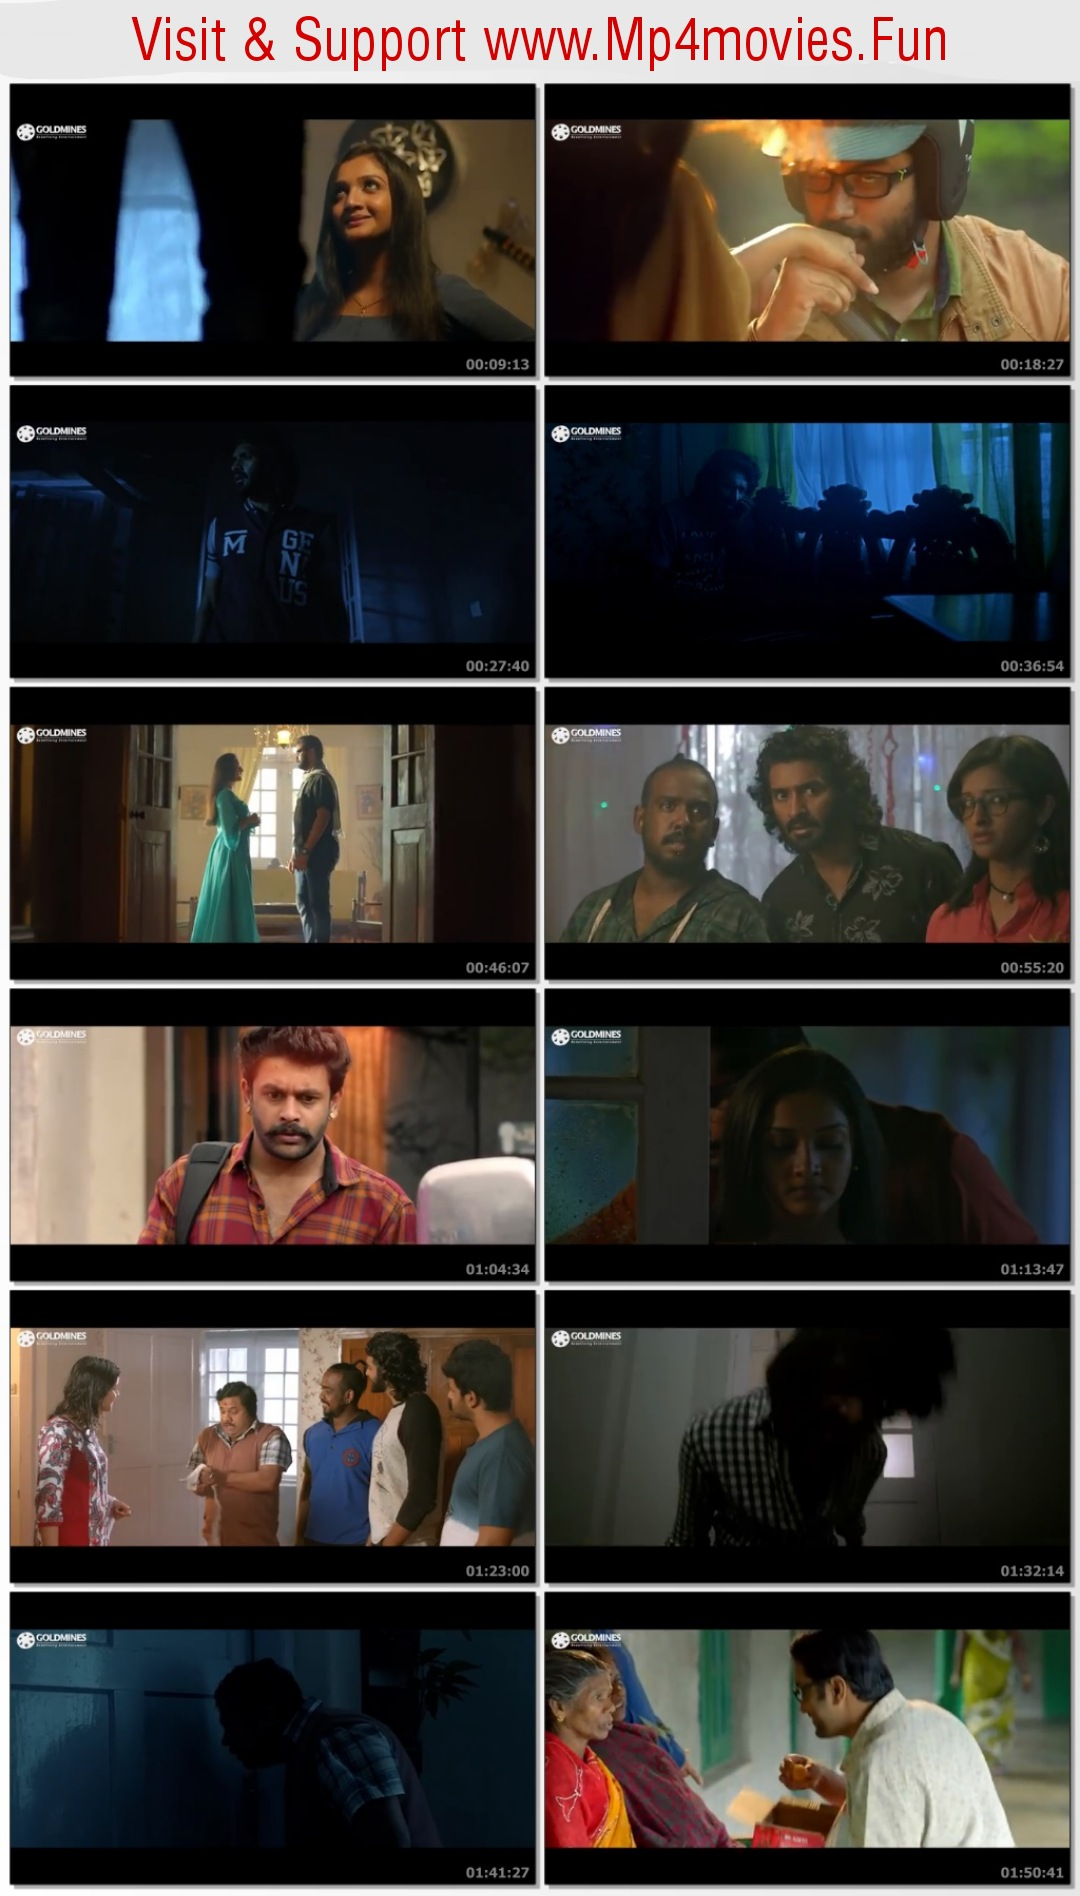 mp4movies poster 1